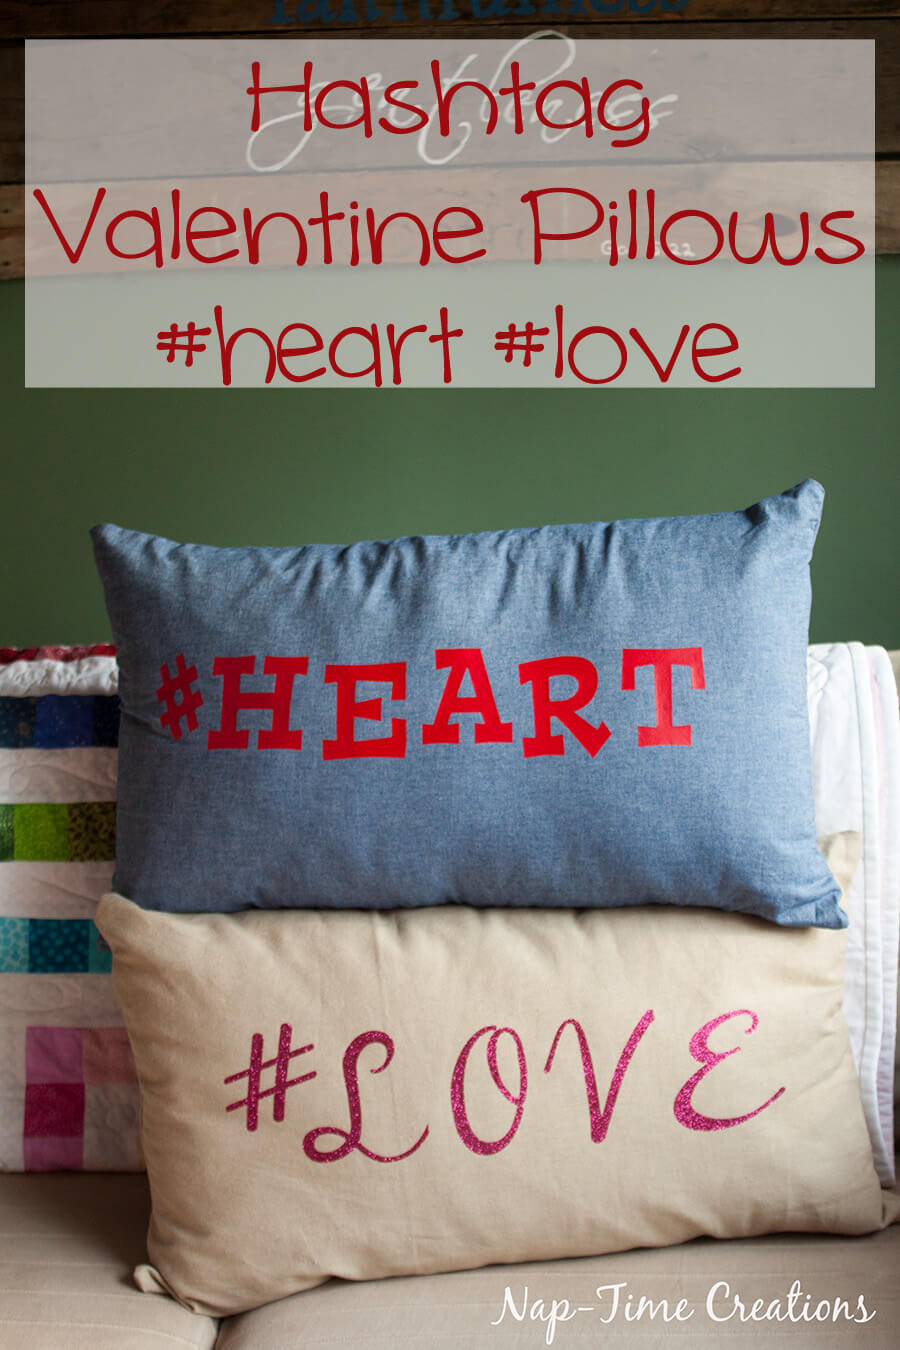 Zipper pillow case tutorial and hashtag valentines pillows easy sewing from Nap-Time Creations